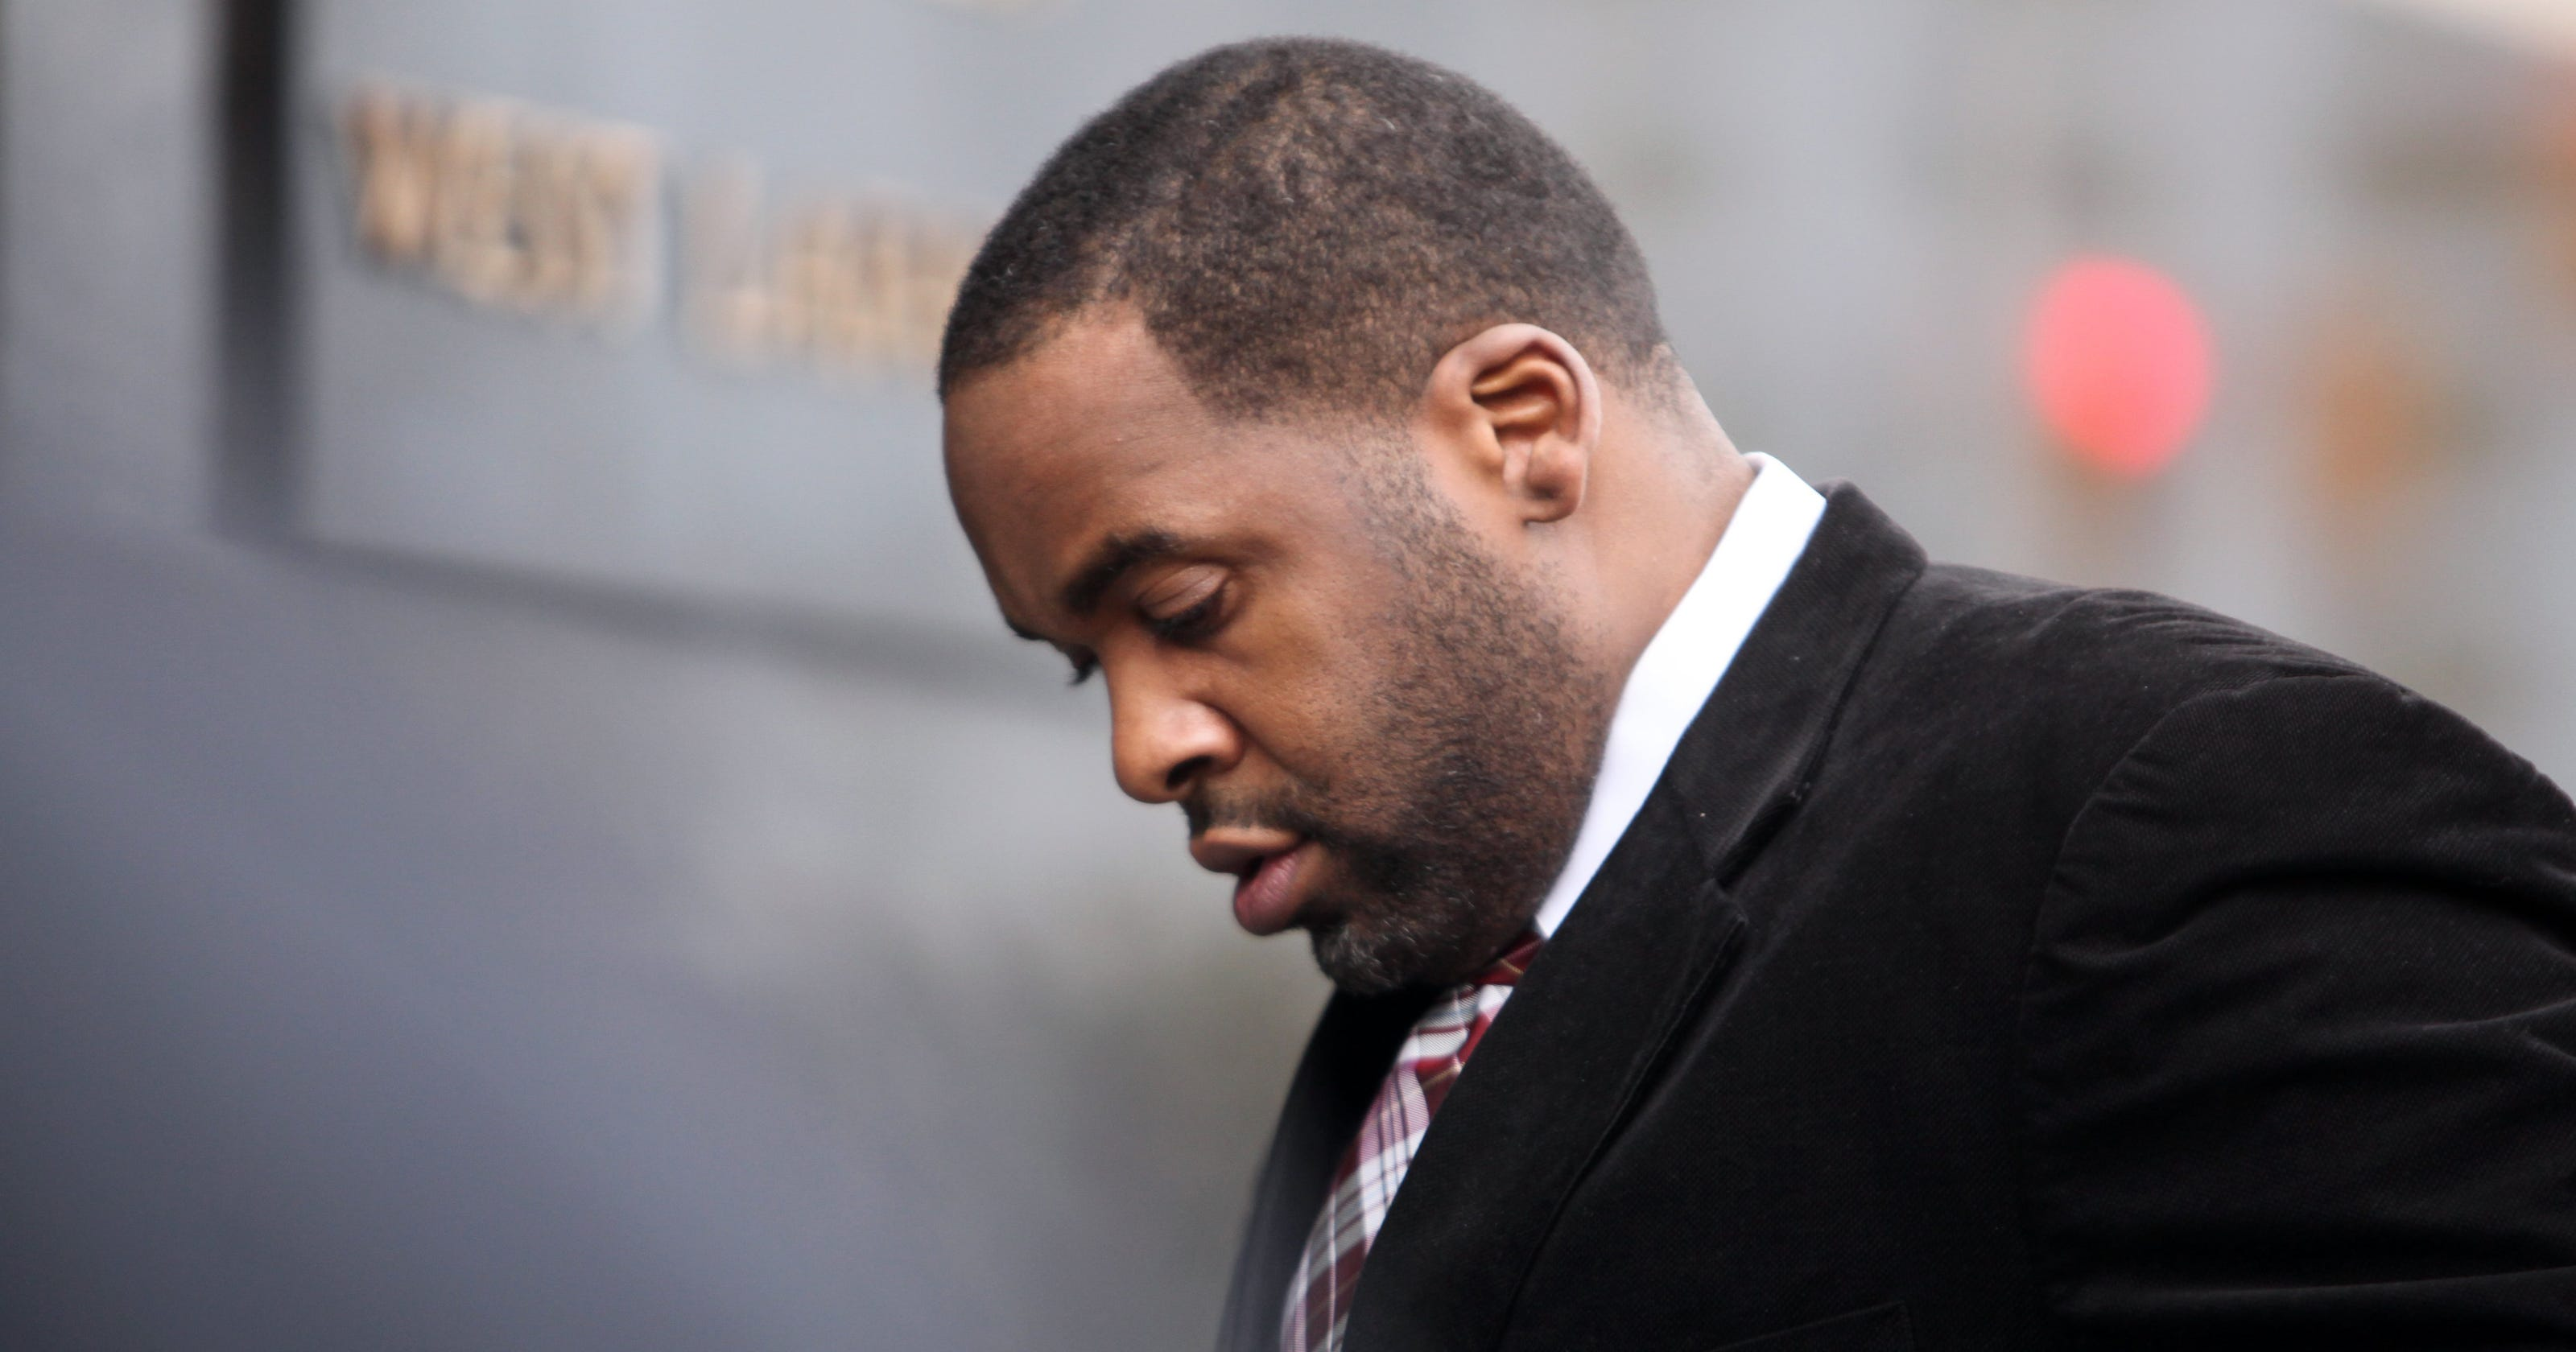 kwame kilpatrick - photo #23